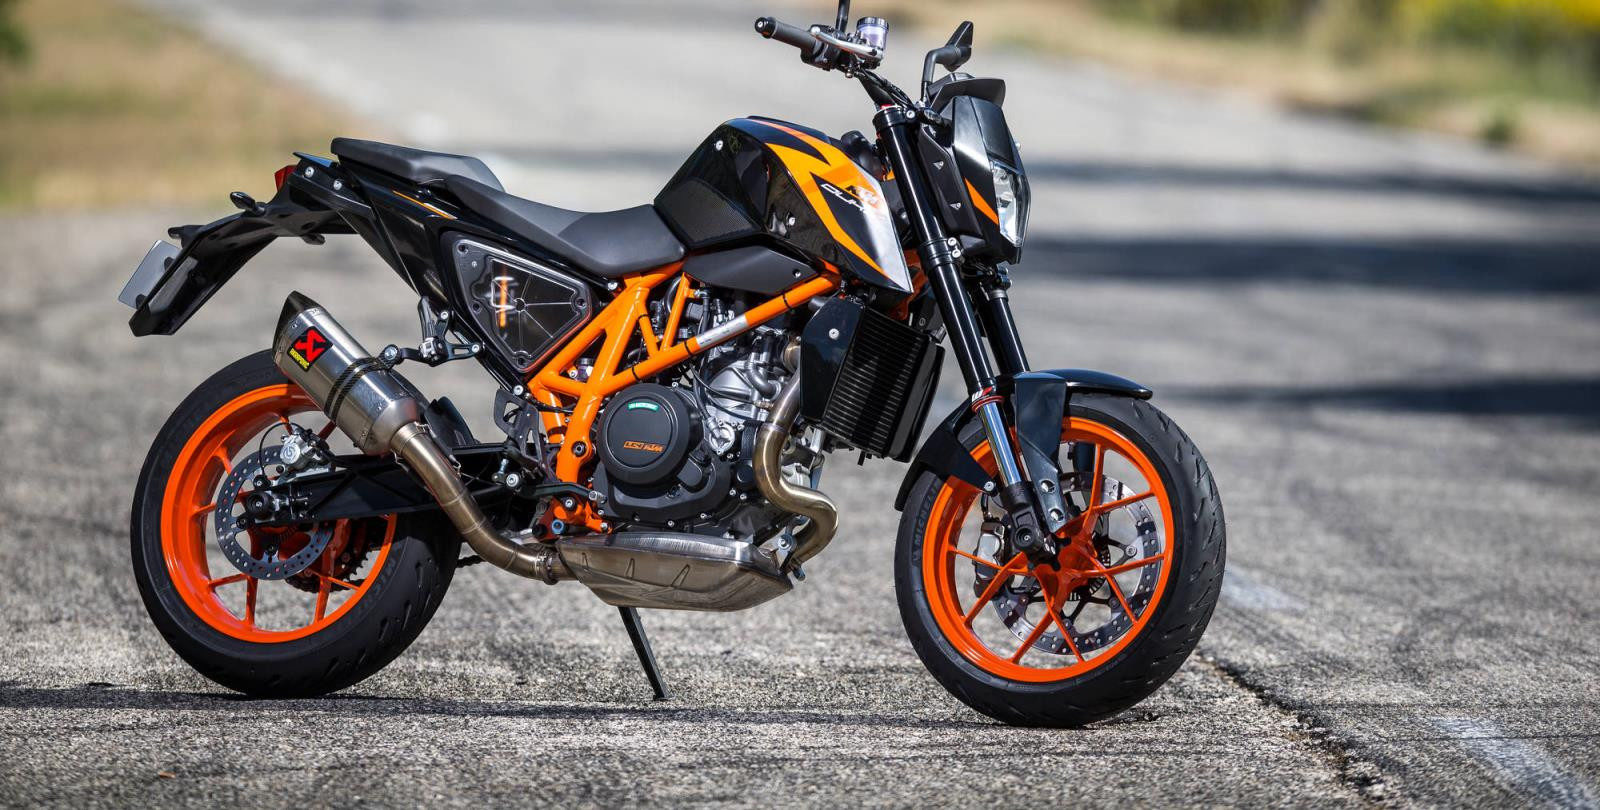 Michelin's new Road 5 sport touring tires on a KTM Duke. Photo courtesy of Michelin.